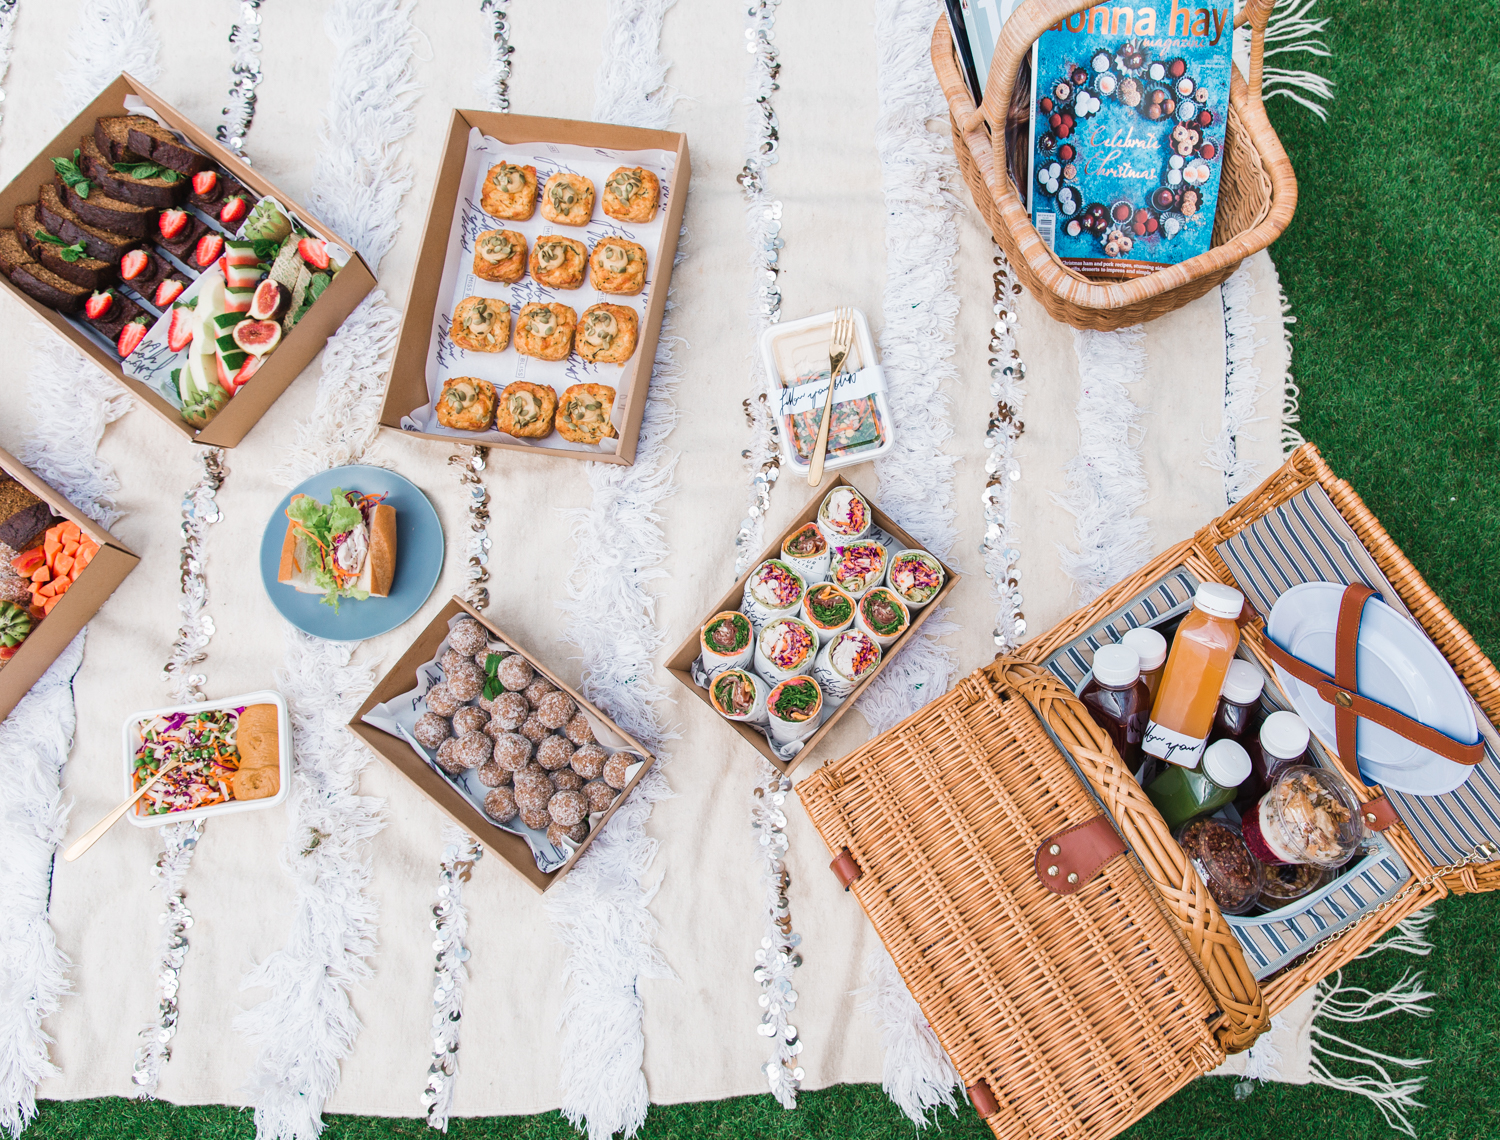 miss_bliss_catering_april_shoot_low_res_2018-214.jpg